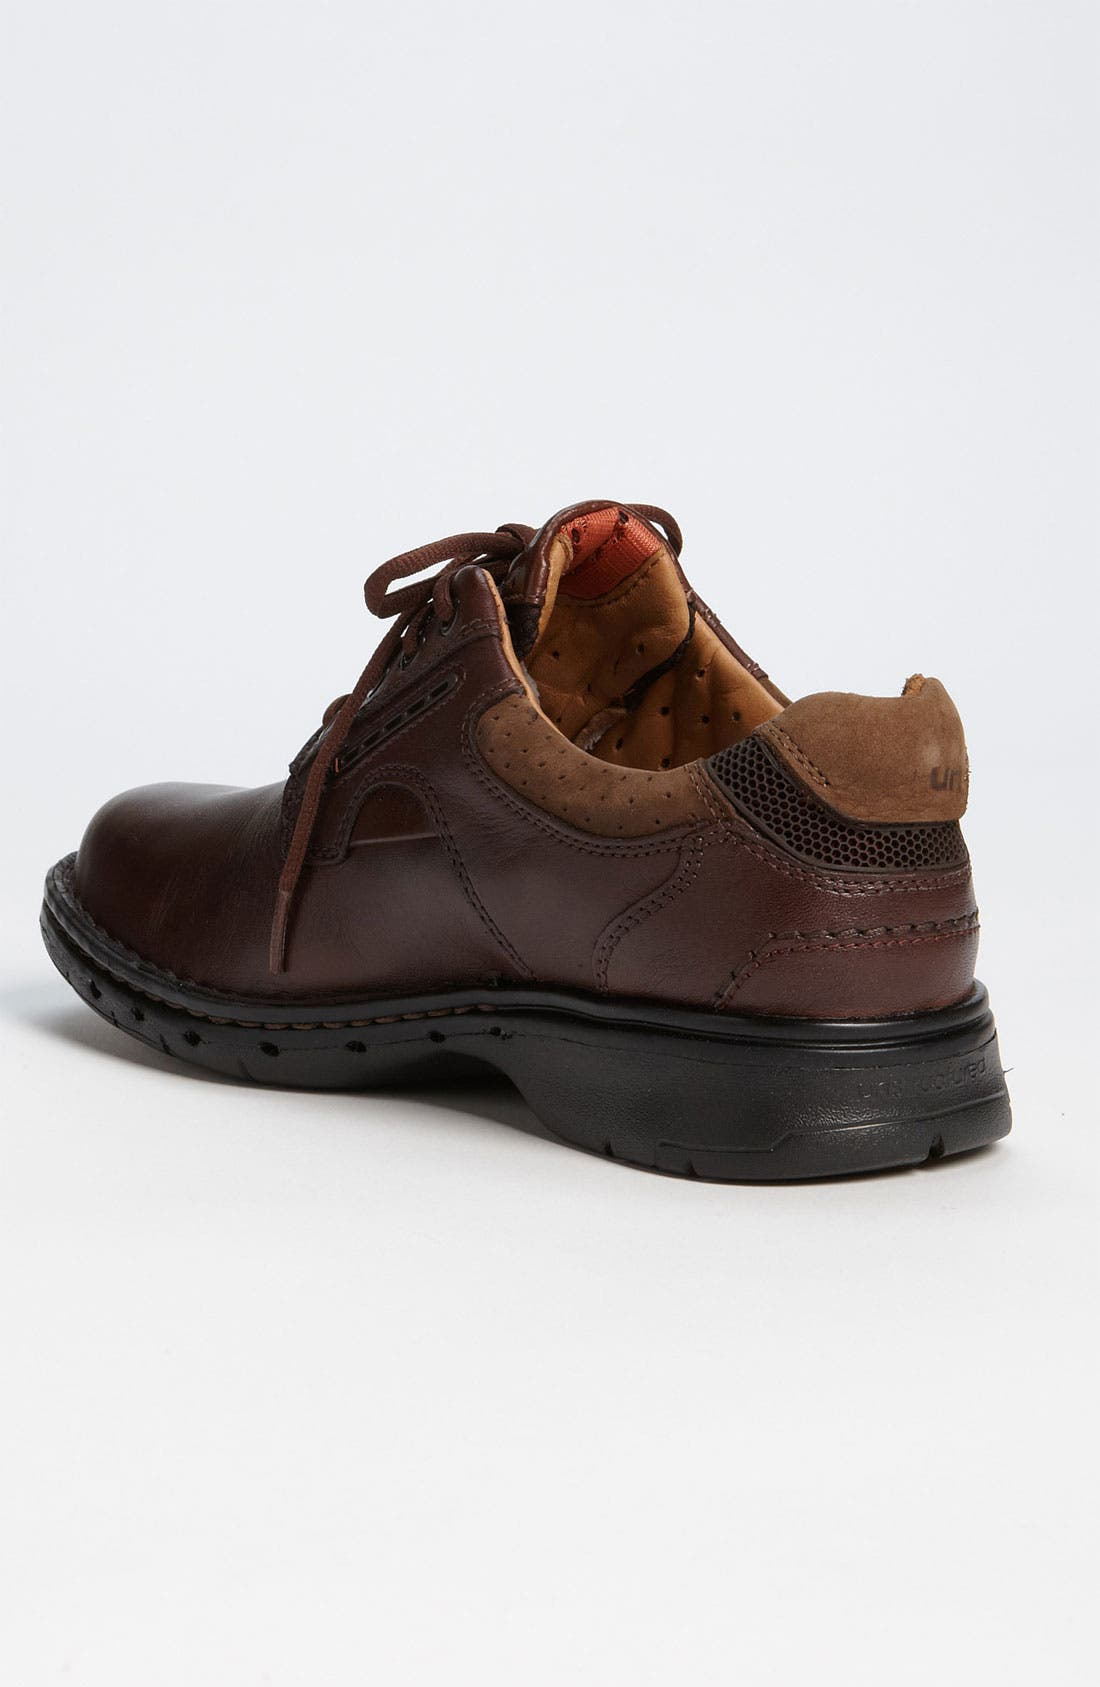 'Un Ravel' Oxford (Online Only),                             Alternate thumbnail 2, color,                             Brown Leather